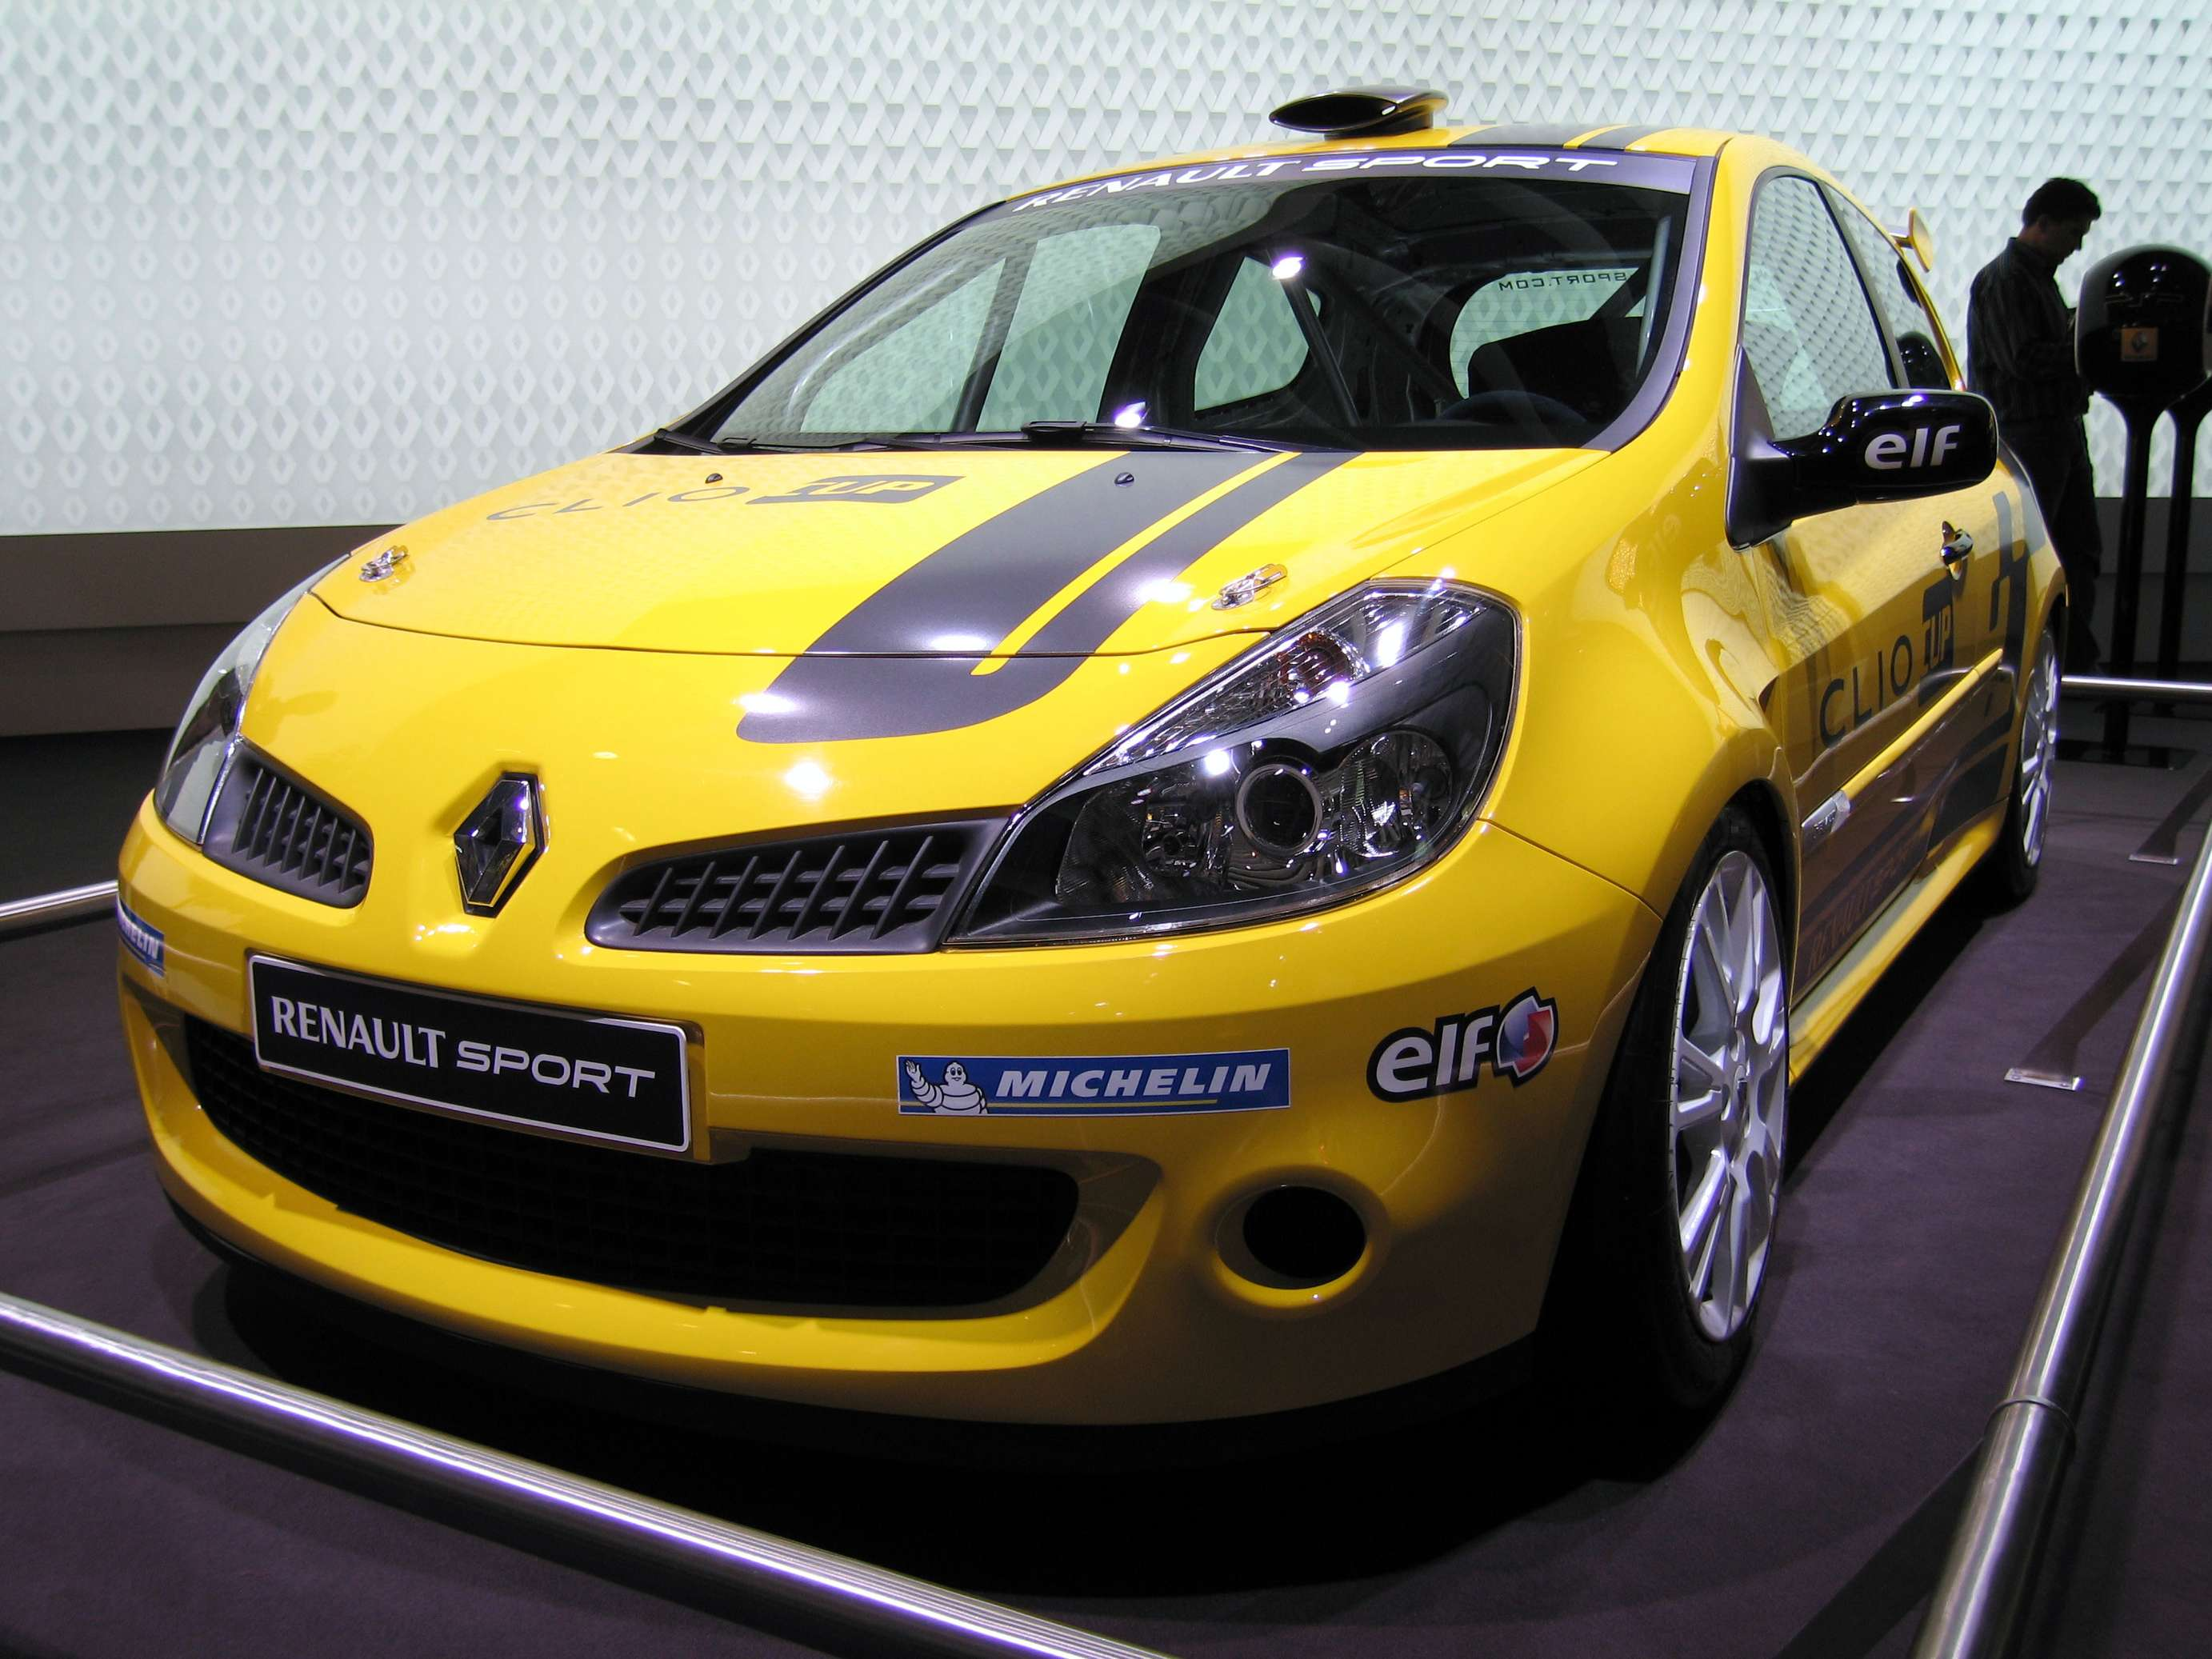 Renault Clio cup #8645546